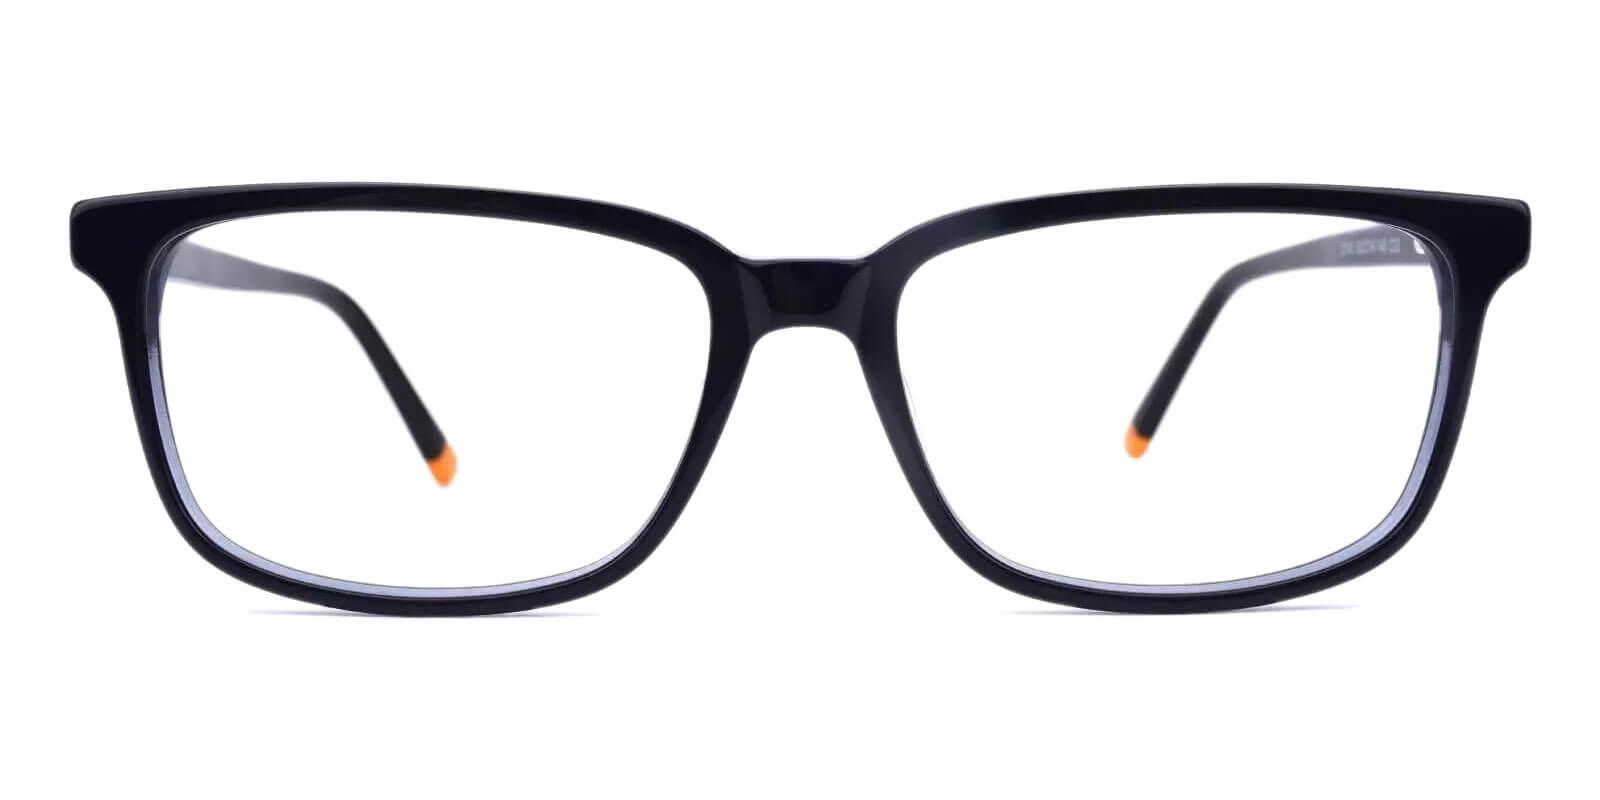 Leupp Corner Blue Acetate Eyeglasses , UniversalBridgeFit , SpringHinges Frames from ABBE Glasses